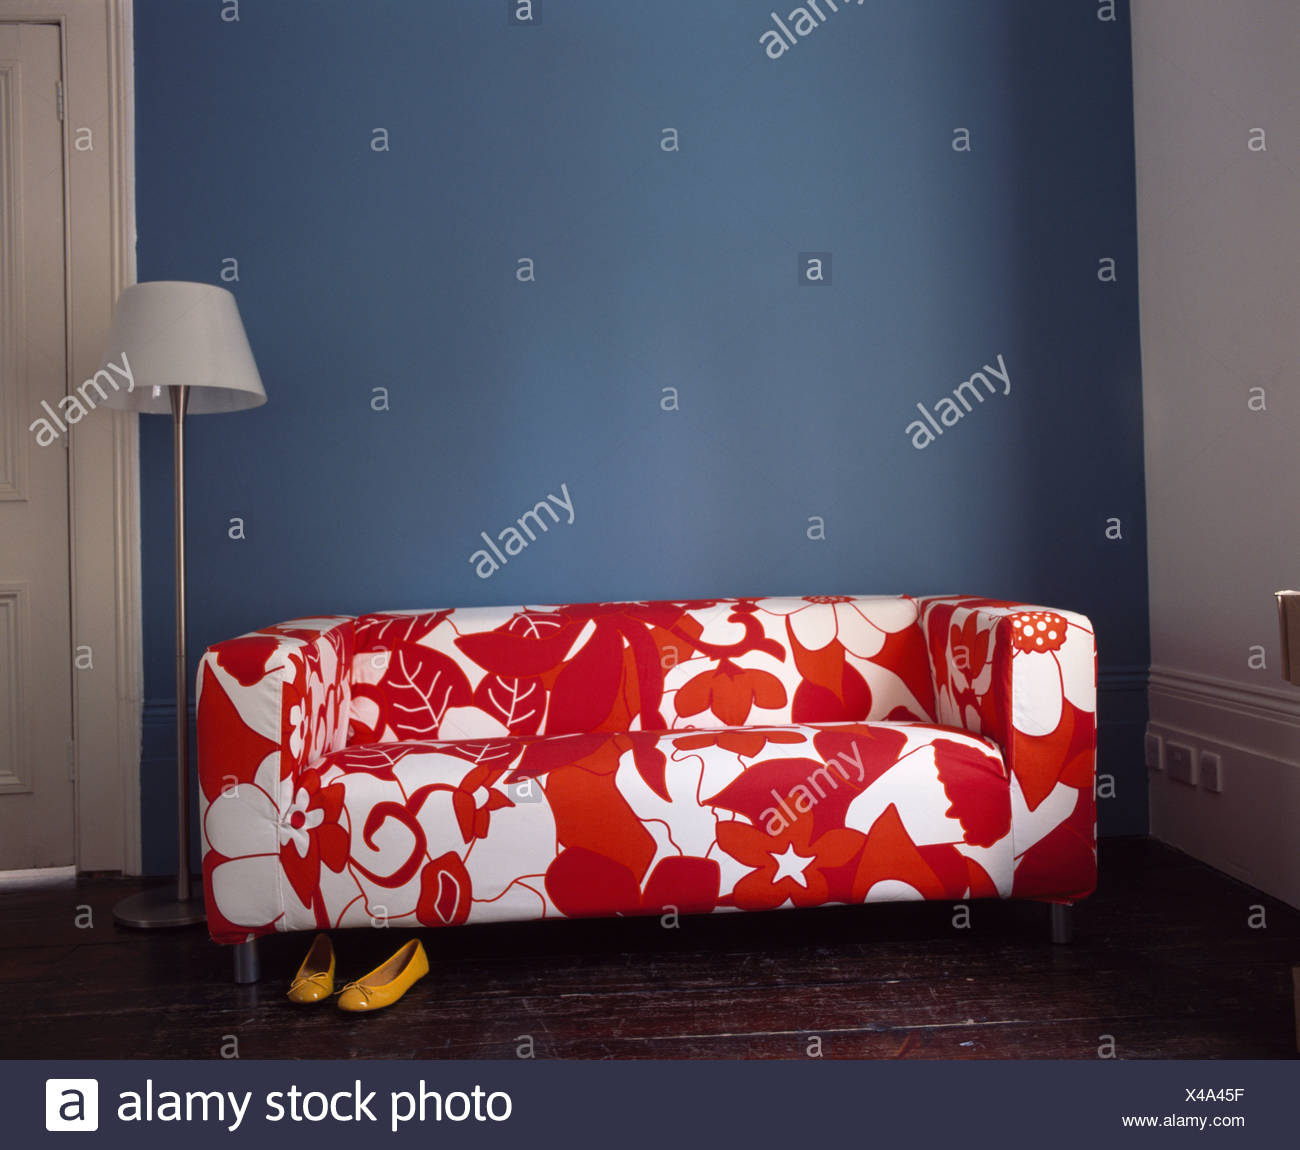 Close-up of modern red+white stylized floral-patterned sofa - Stock Image